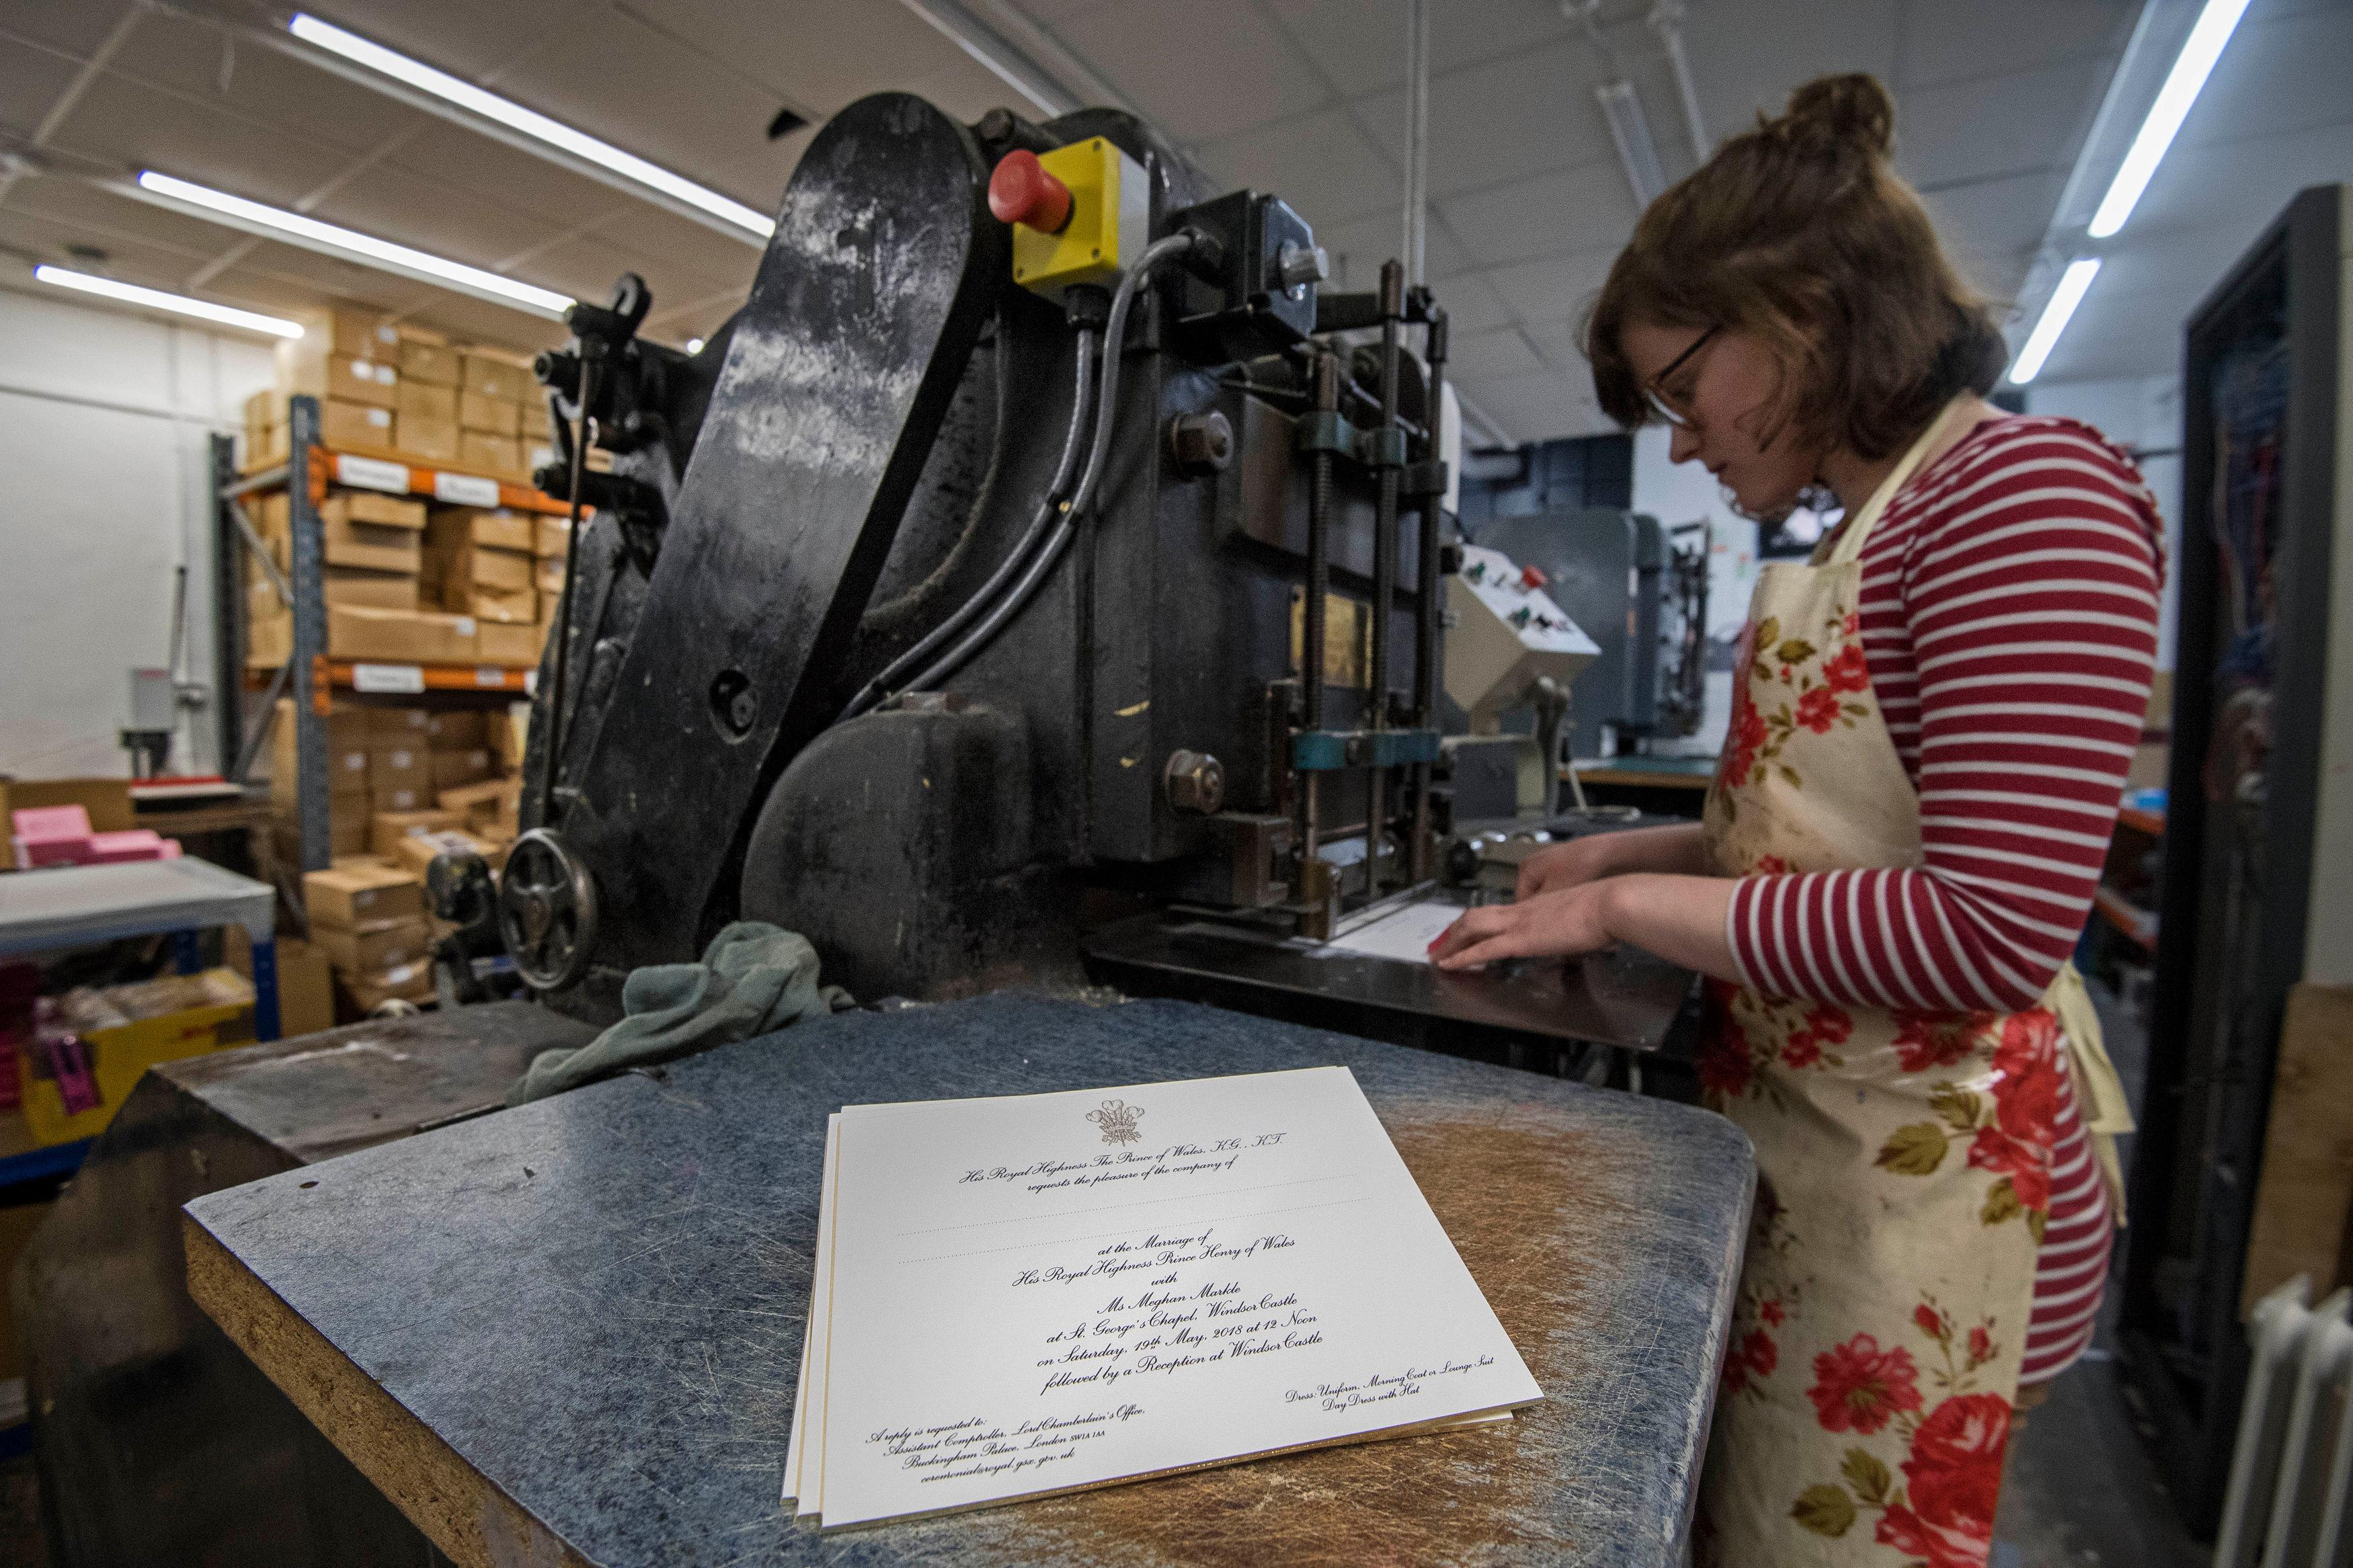 Lottie Small use the die stamping press at the workshop of Barnard and Westwood in London, who are printing the invitations for Prince Harry and Meghan Markle's wedding in May, Thursday March 22, 2018. Prince Harry and Meghan will get married at St George's Chapel  in Windsor Castle on Saturday  May 19. (Victoria Jones/Pool via AP)